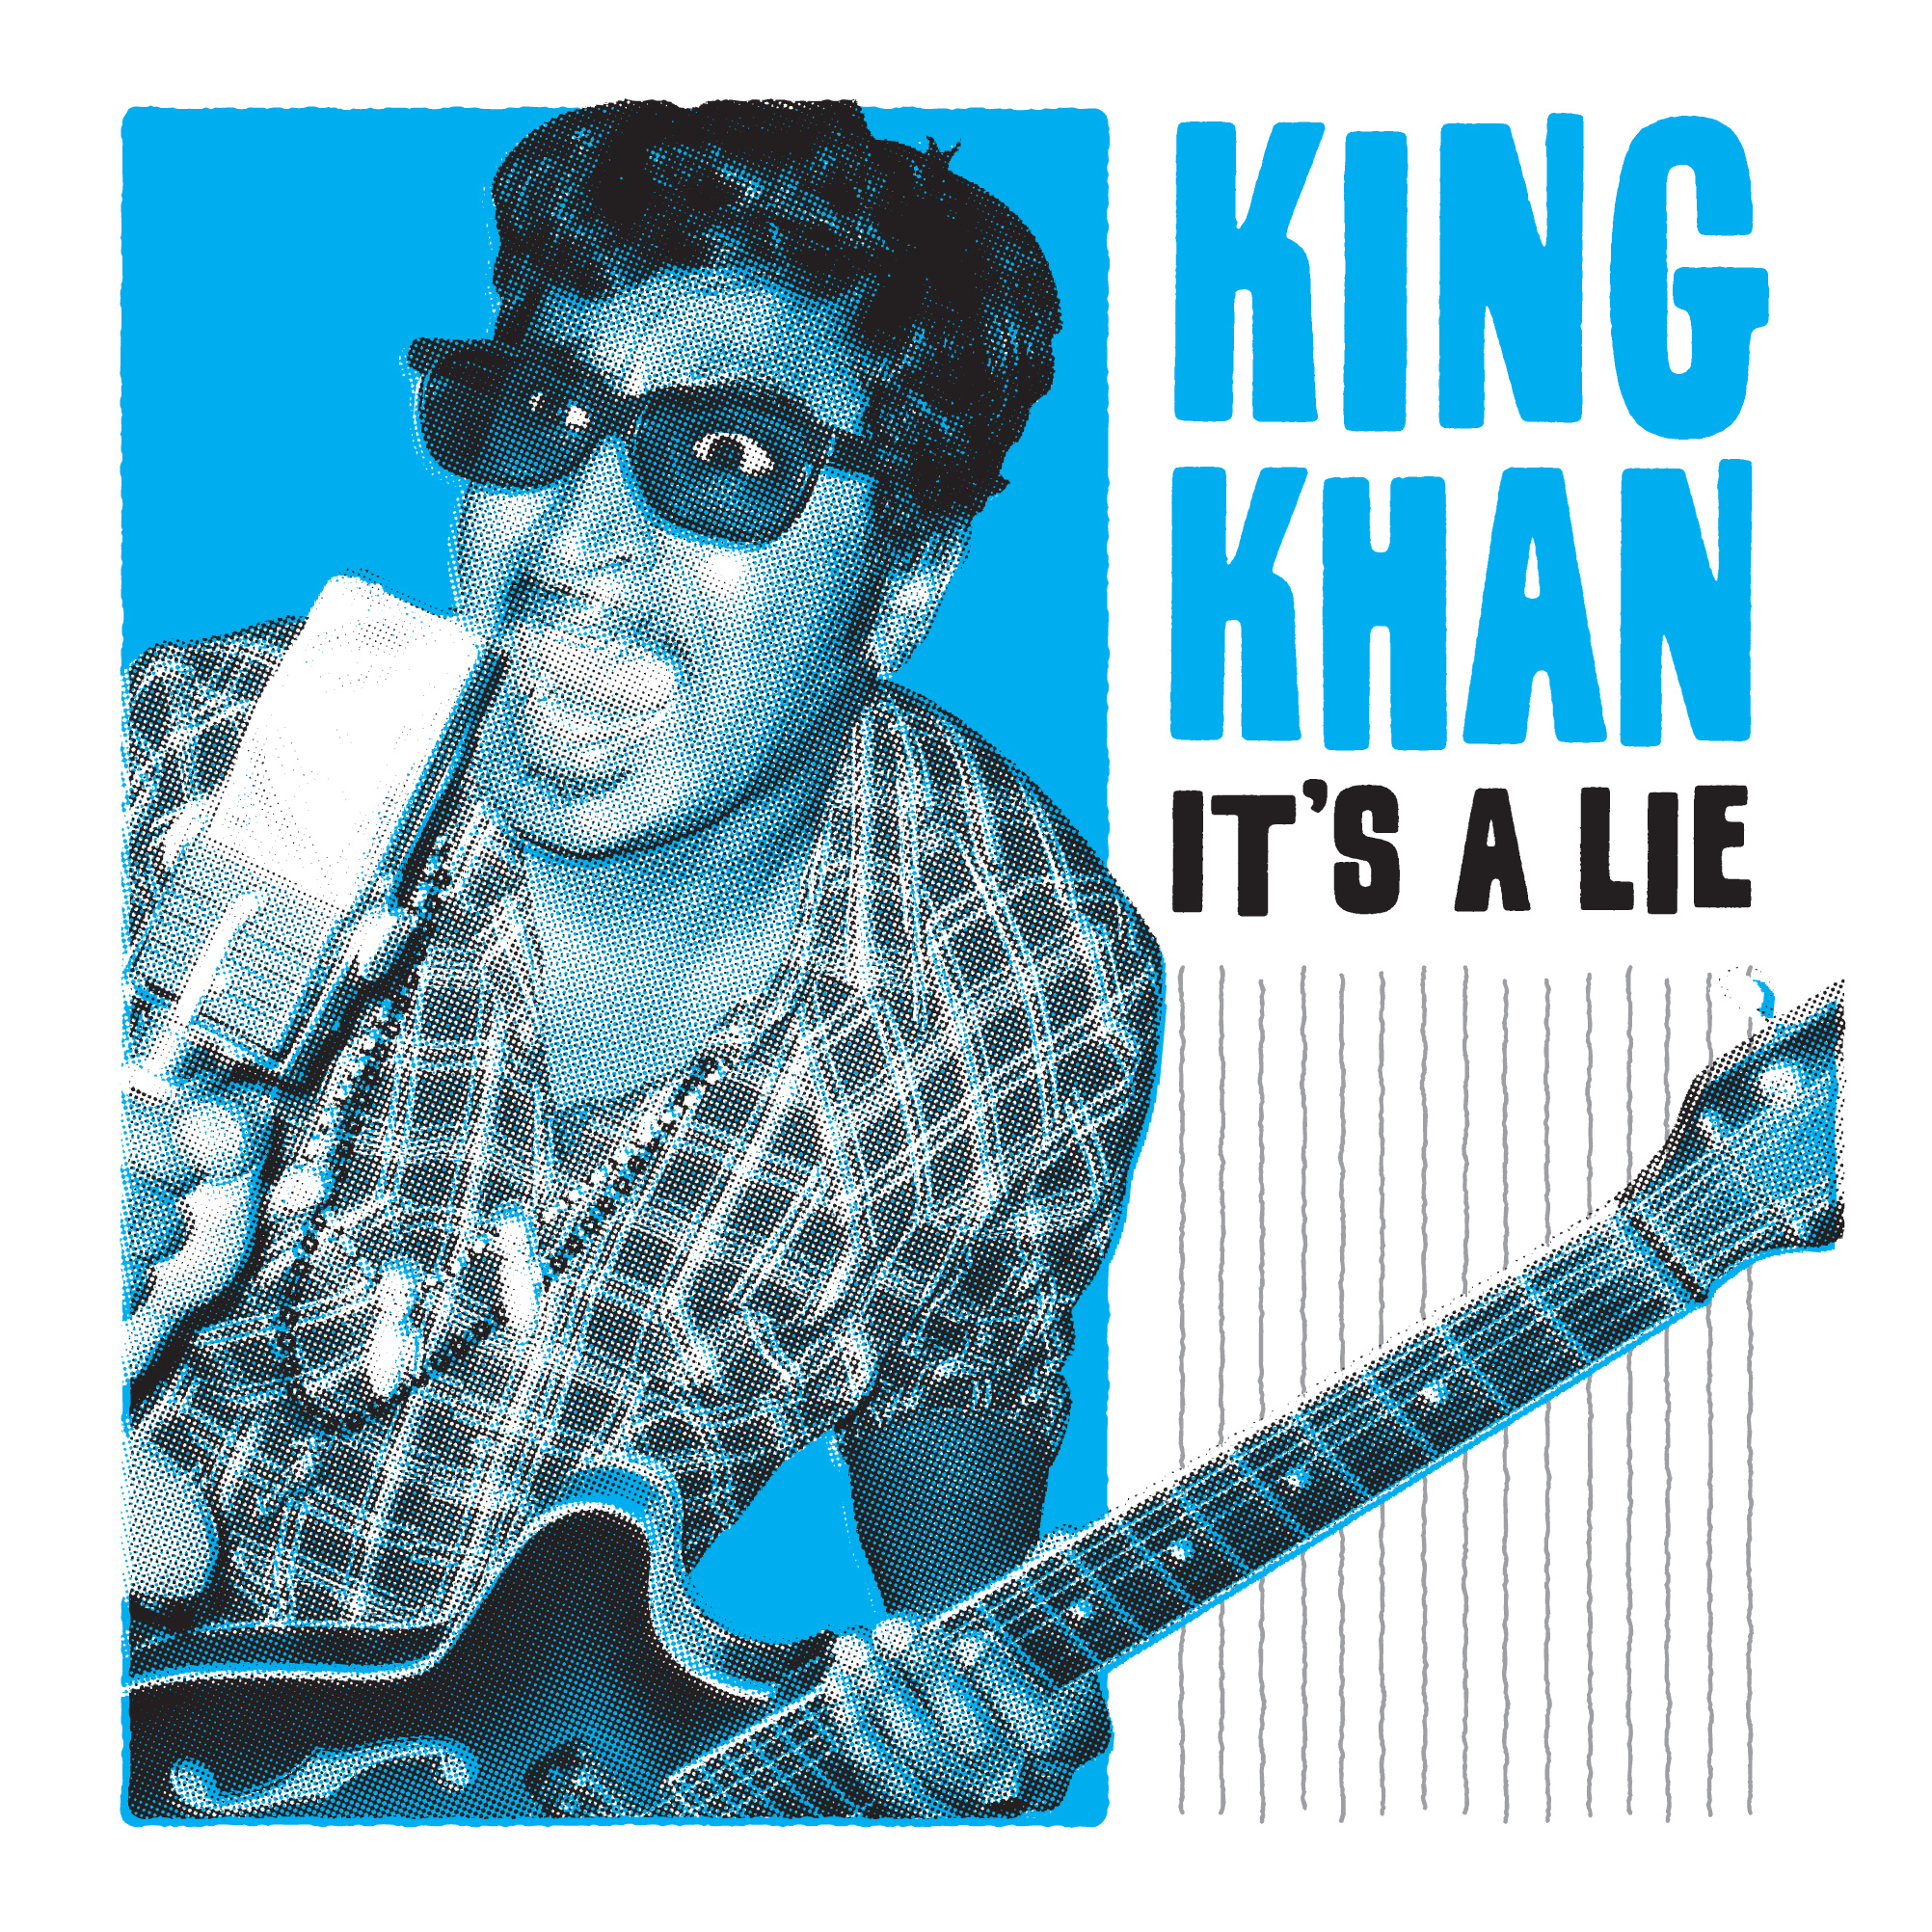 King Khan - It's a Lie 45 sleeve